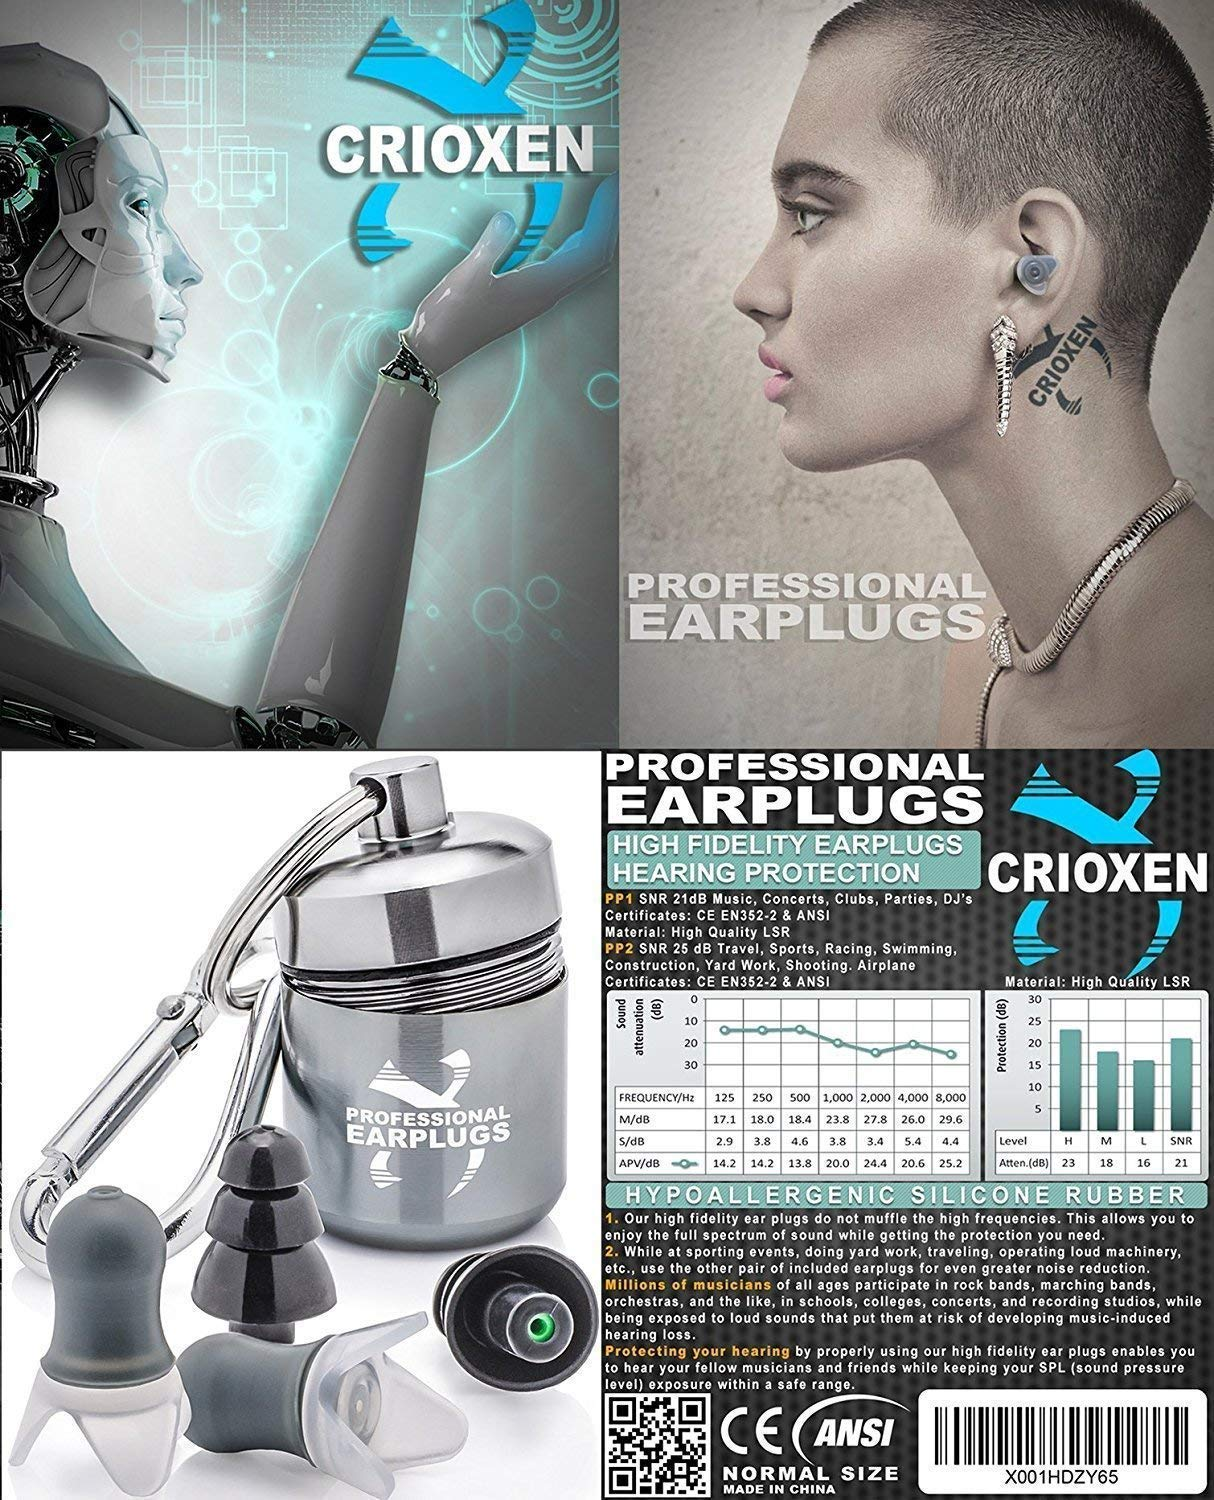 Noise Cancelling Ear Plugs for Sleeping - High Fidelity Silicone Earplugs Musicians' by CRIOXEN (Image #7)